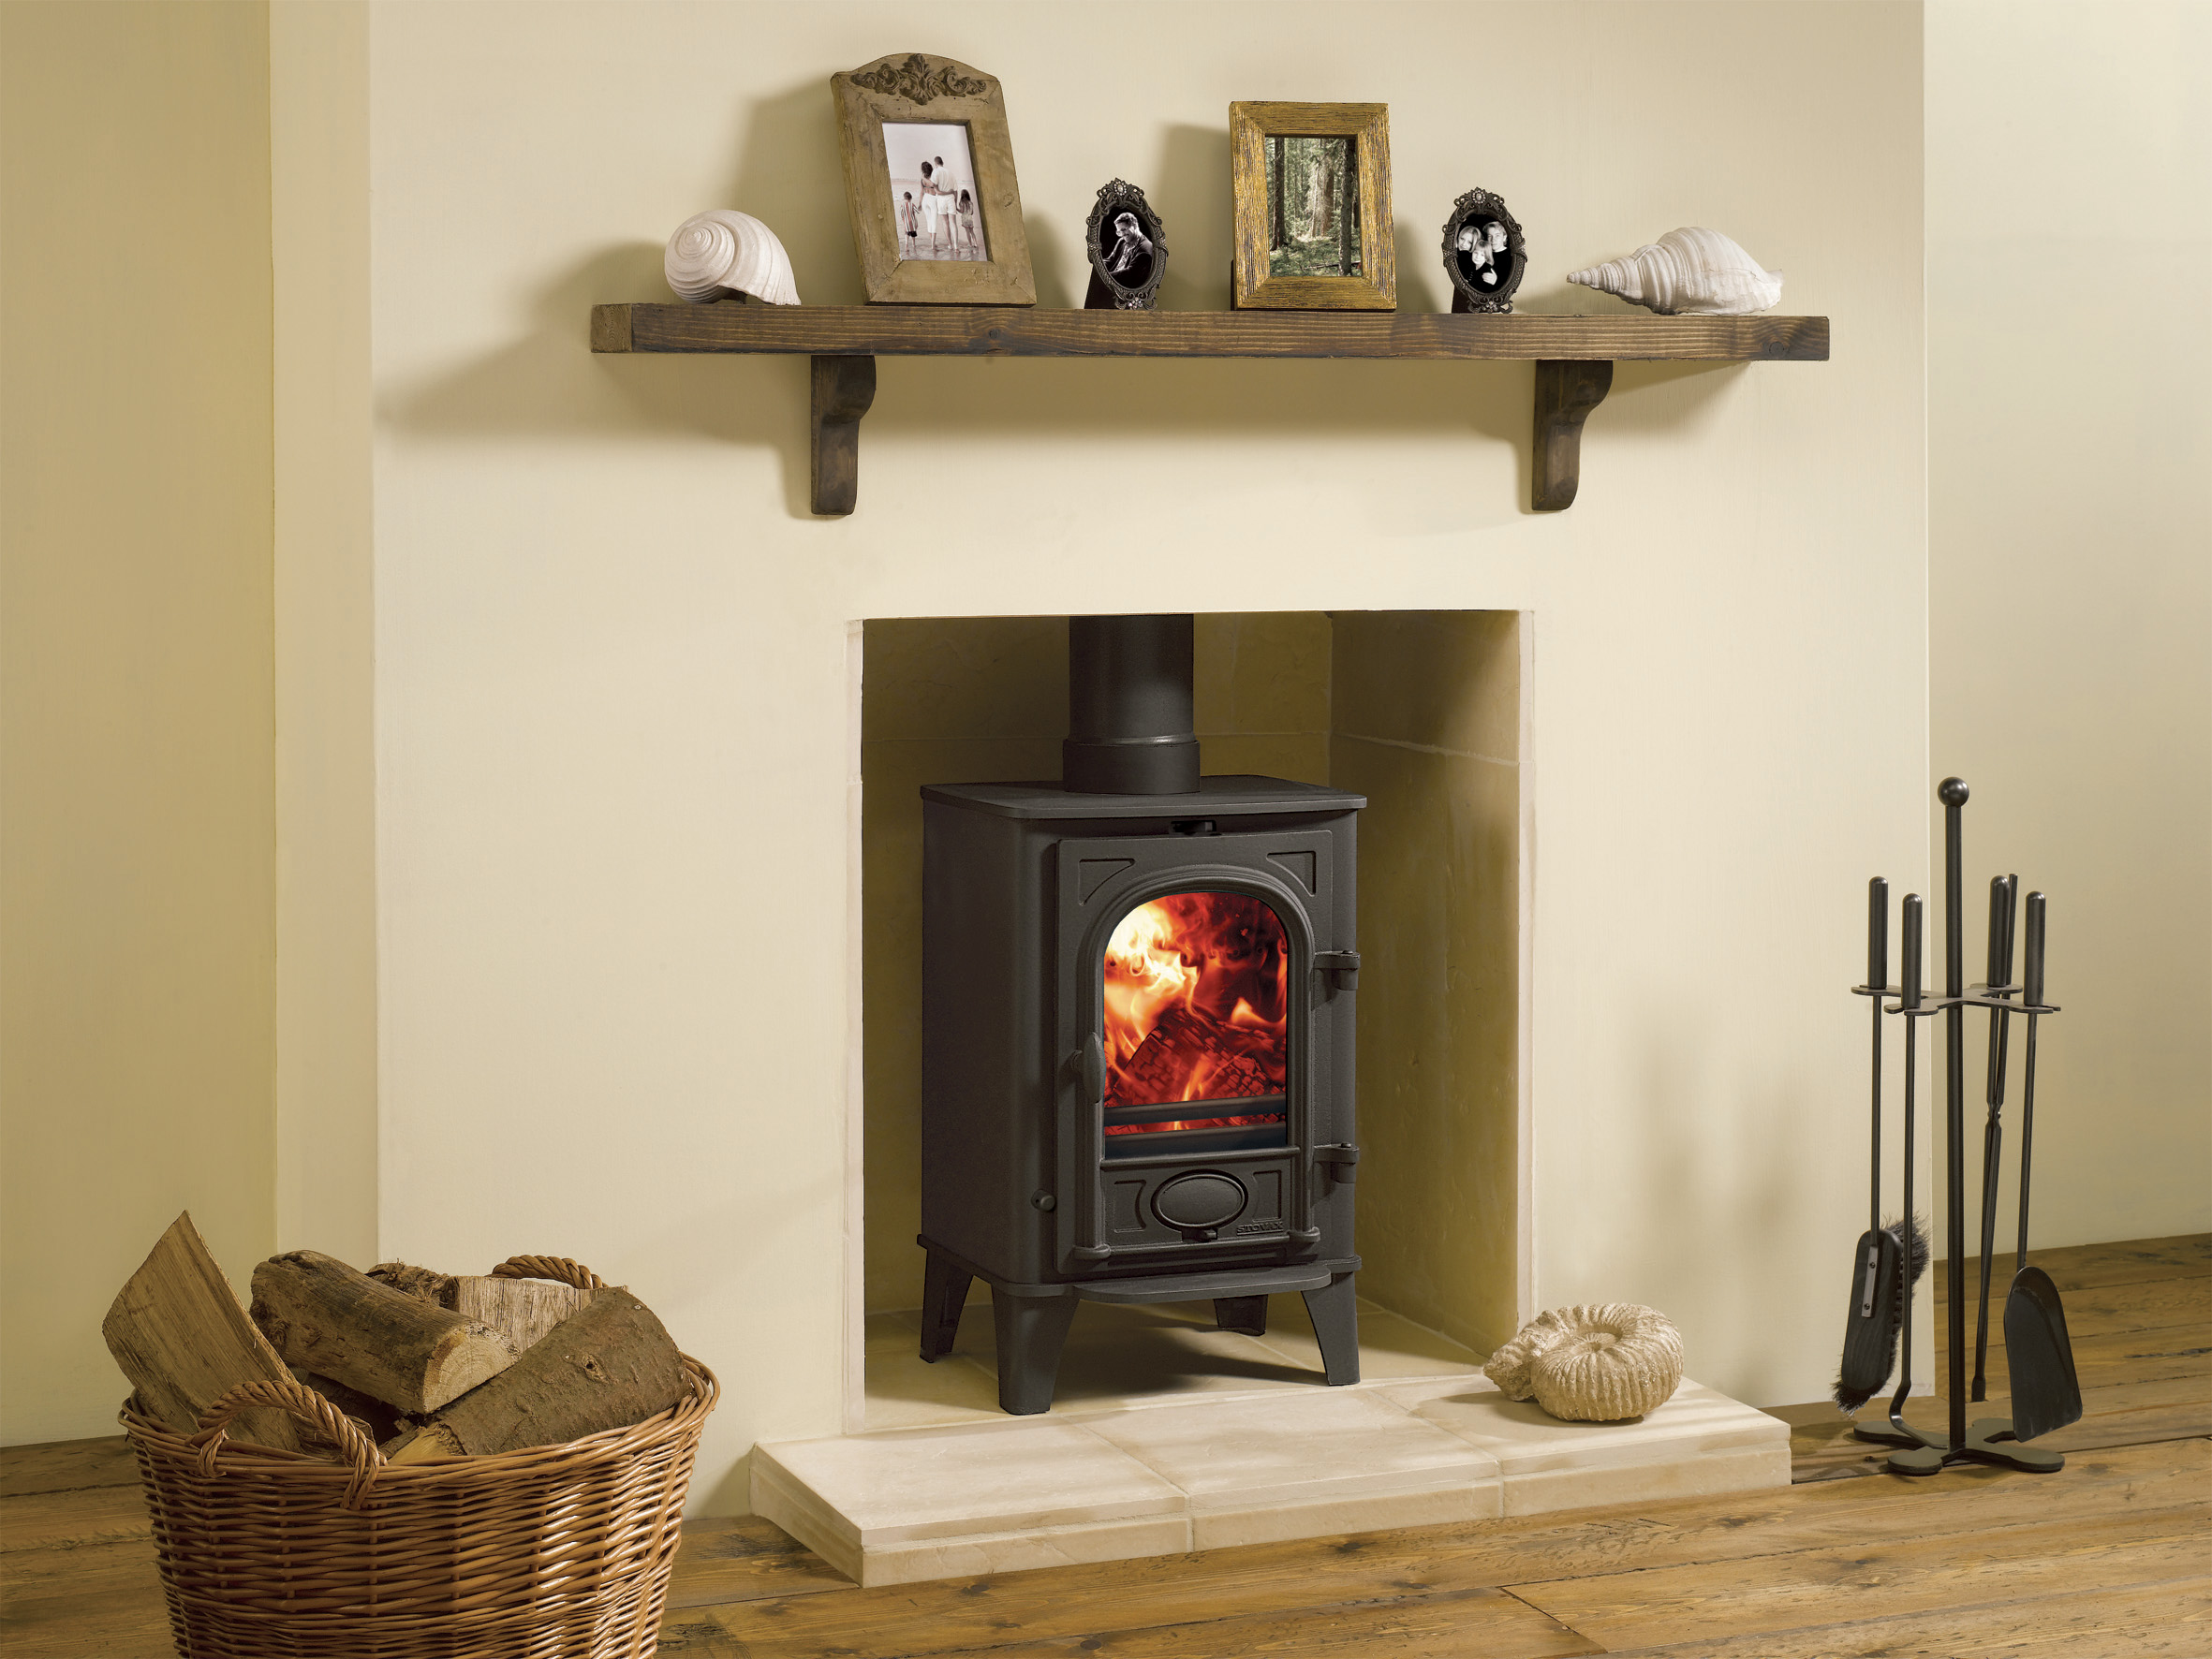 freestanding, granite hearth, slate hearth, woodburning, multifuel, Bangor, Newtownards, Belfast, Holywood, Conlig, Stove yard, Fireplaces, flue pipe, hearths, room heater, wilsons, Portaferry, Kircubbin, Greyabbey, riven slate, wooden beans, fireplace beams, fire chambers, open fires, logs, coal, grates, stove glass, grate bars, ards fireplaces, Jubilee Road, Helensbay, Crawfordsburn, flexi flue, chimney cowls, down draught cowls, gas, natural gas, reflex 75T, log effect fire, Gazco, stovax, medip, arada, varde, Henley, hunter, yeoman, glass hearths, electric fires, electric whole in the wall fires,